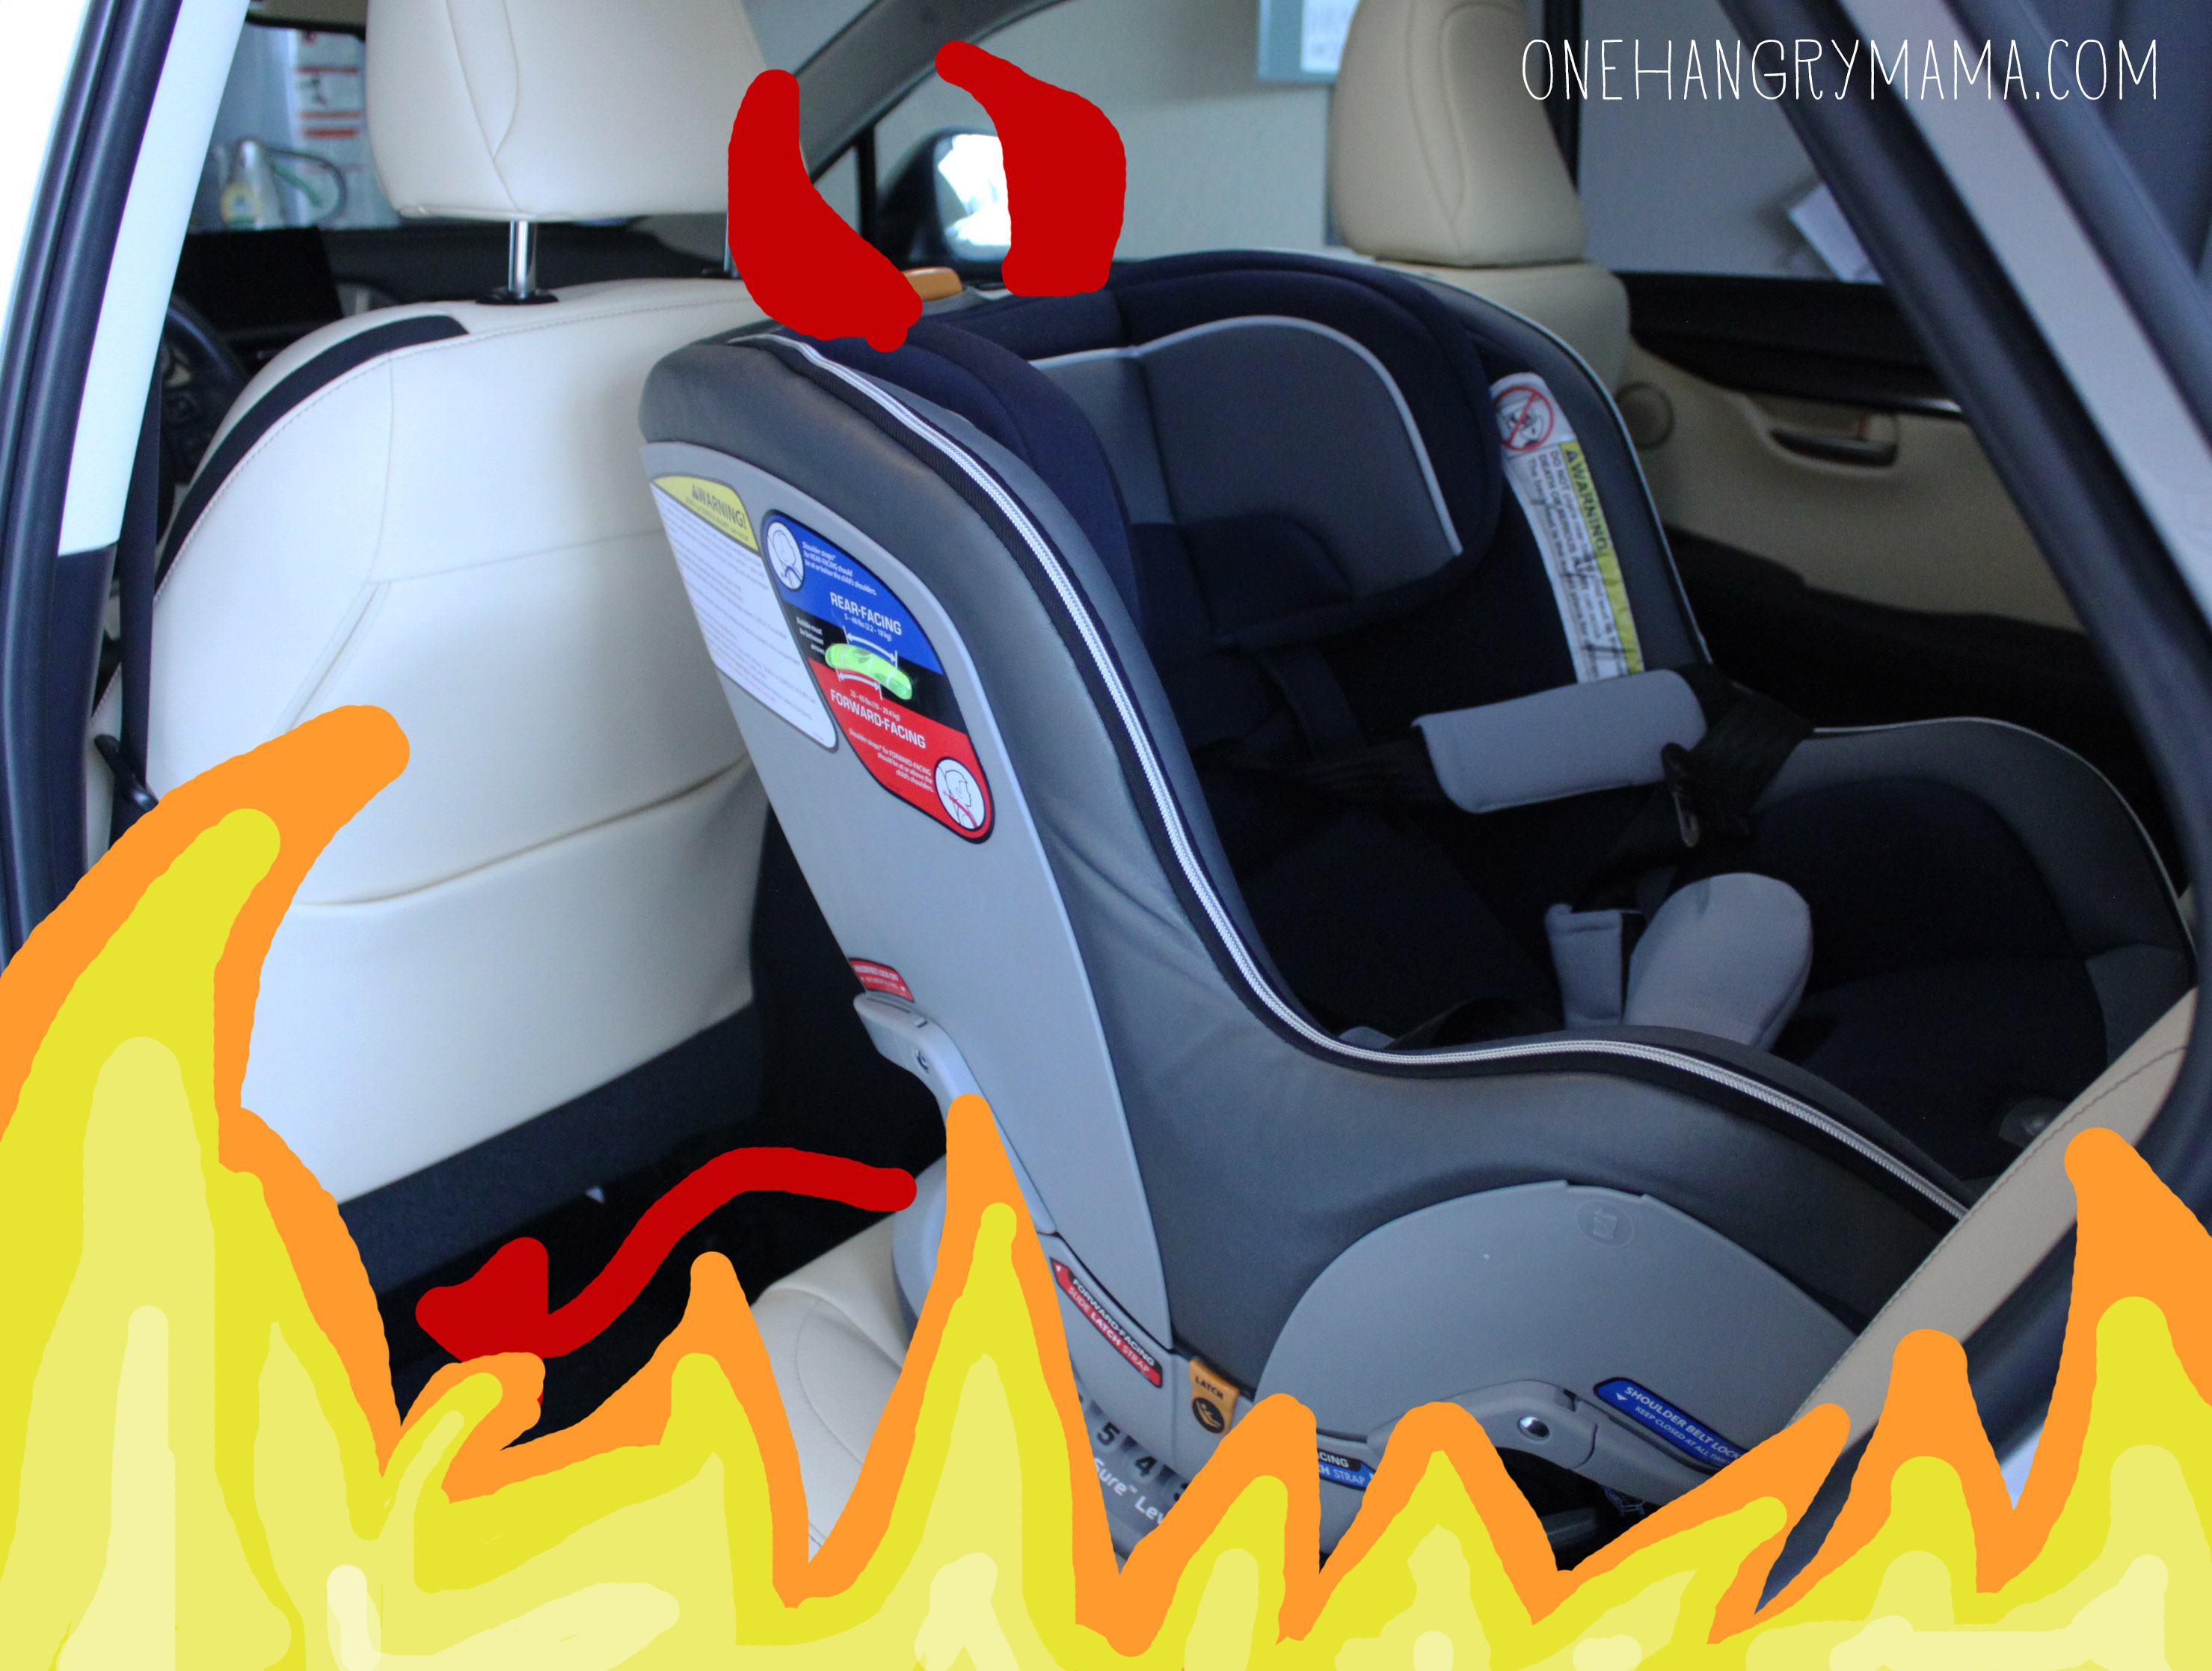 Car Seats are the Devil's Handiwork | One Hangry Mama